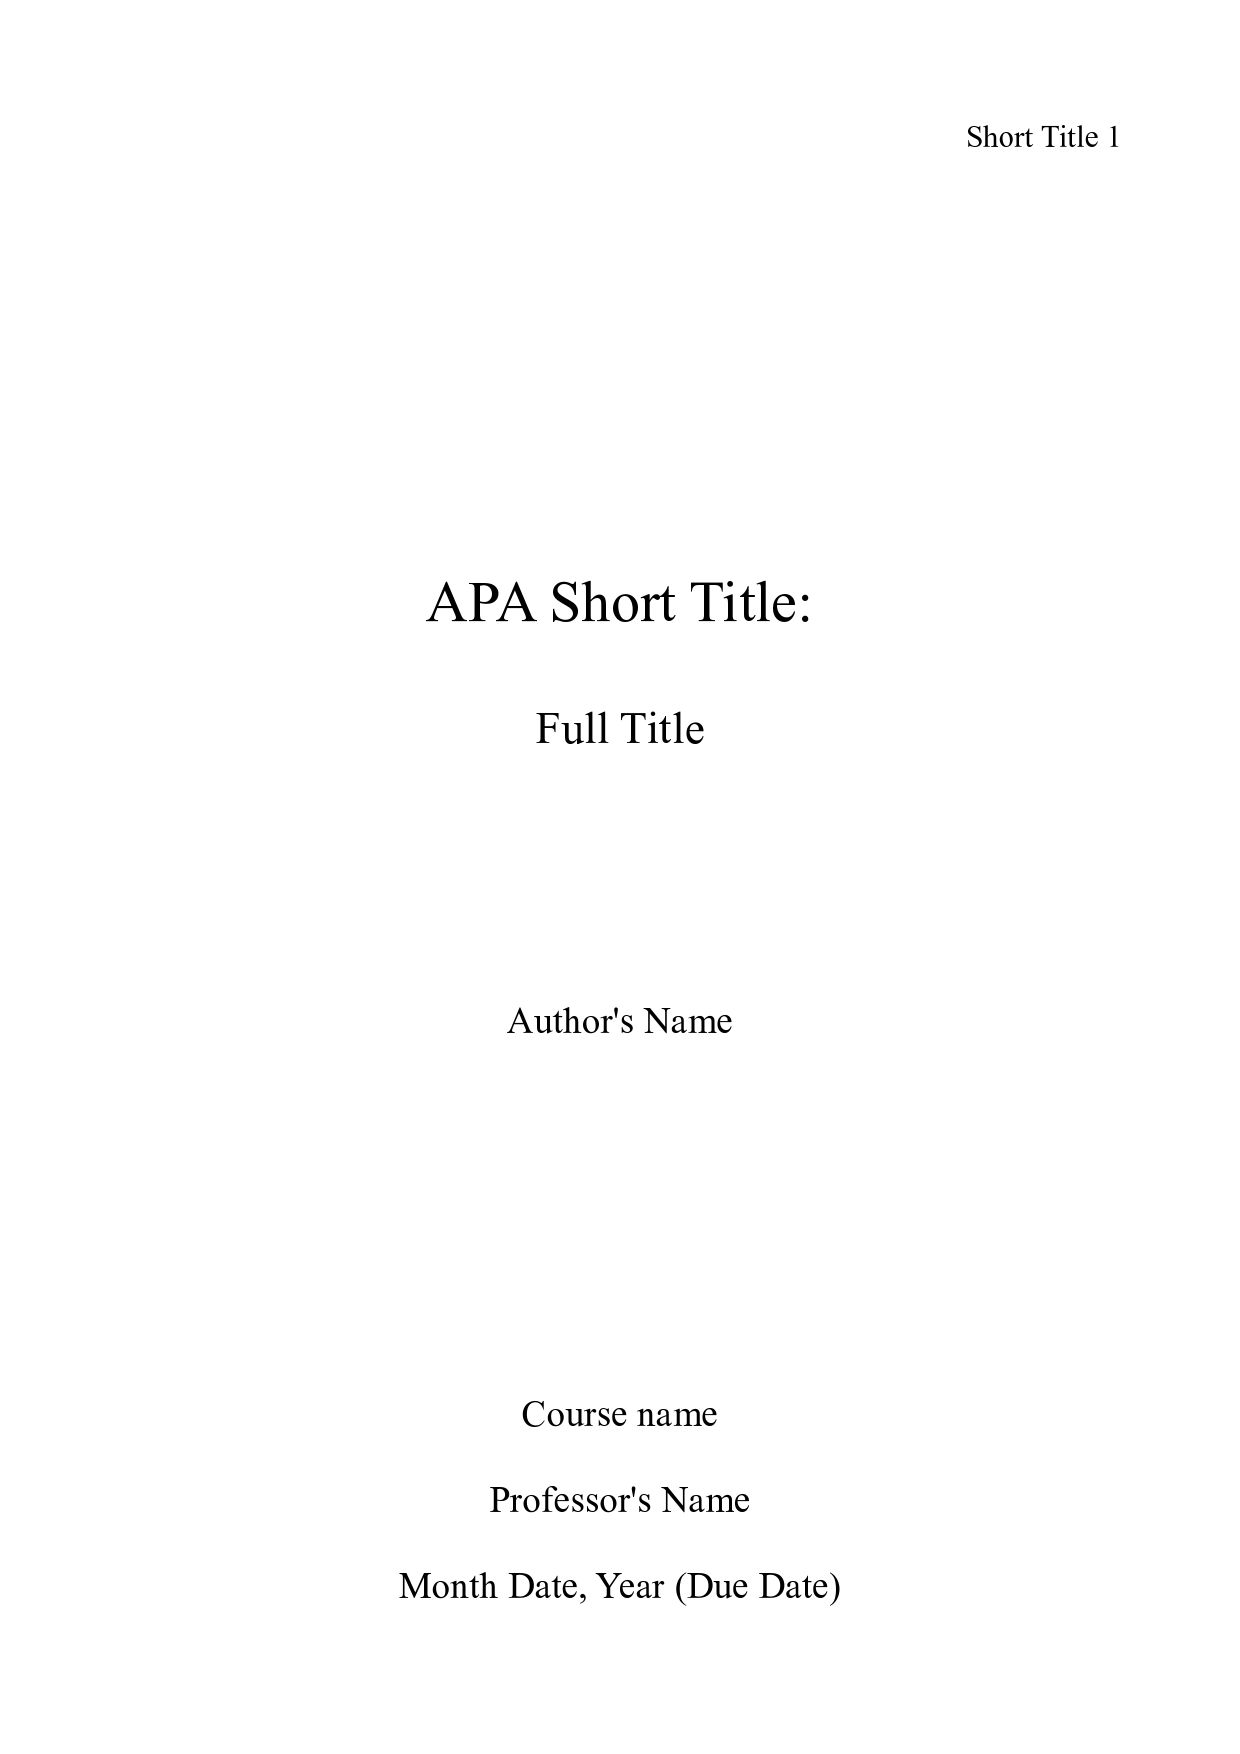 005 Cover Page For Research Paper Apa Style Dreaded Of Term Template Format Full